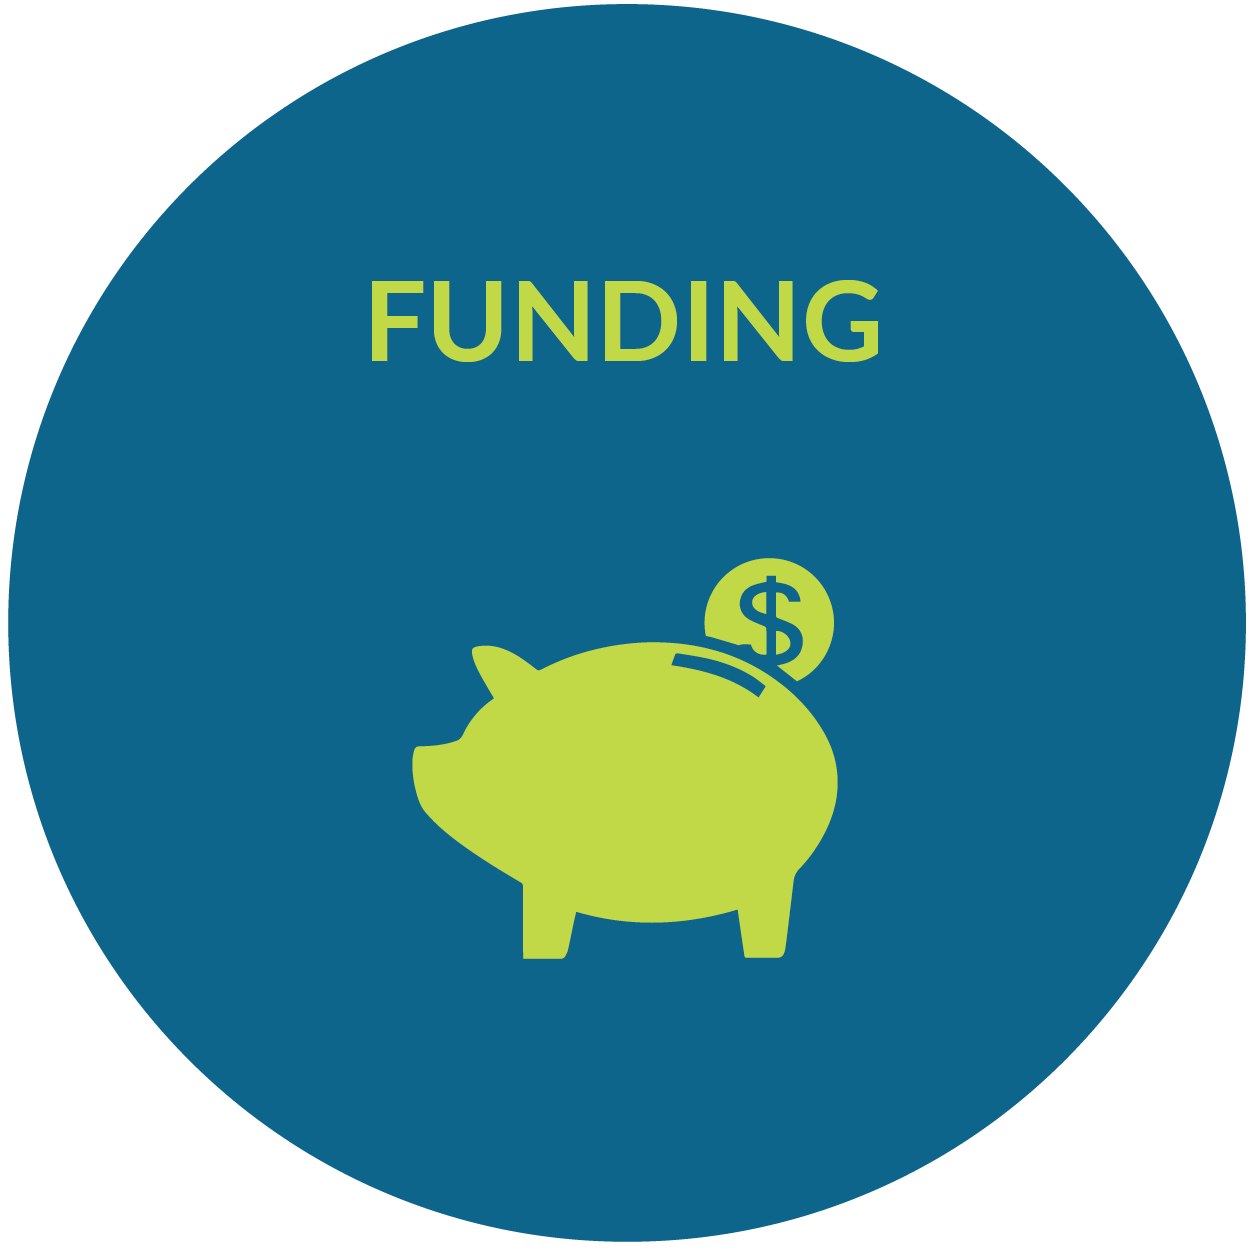 Funding Support